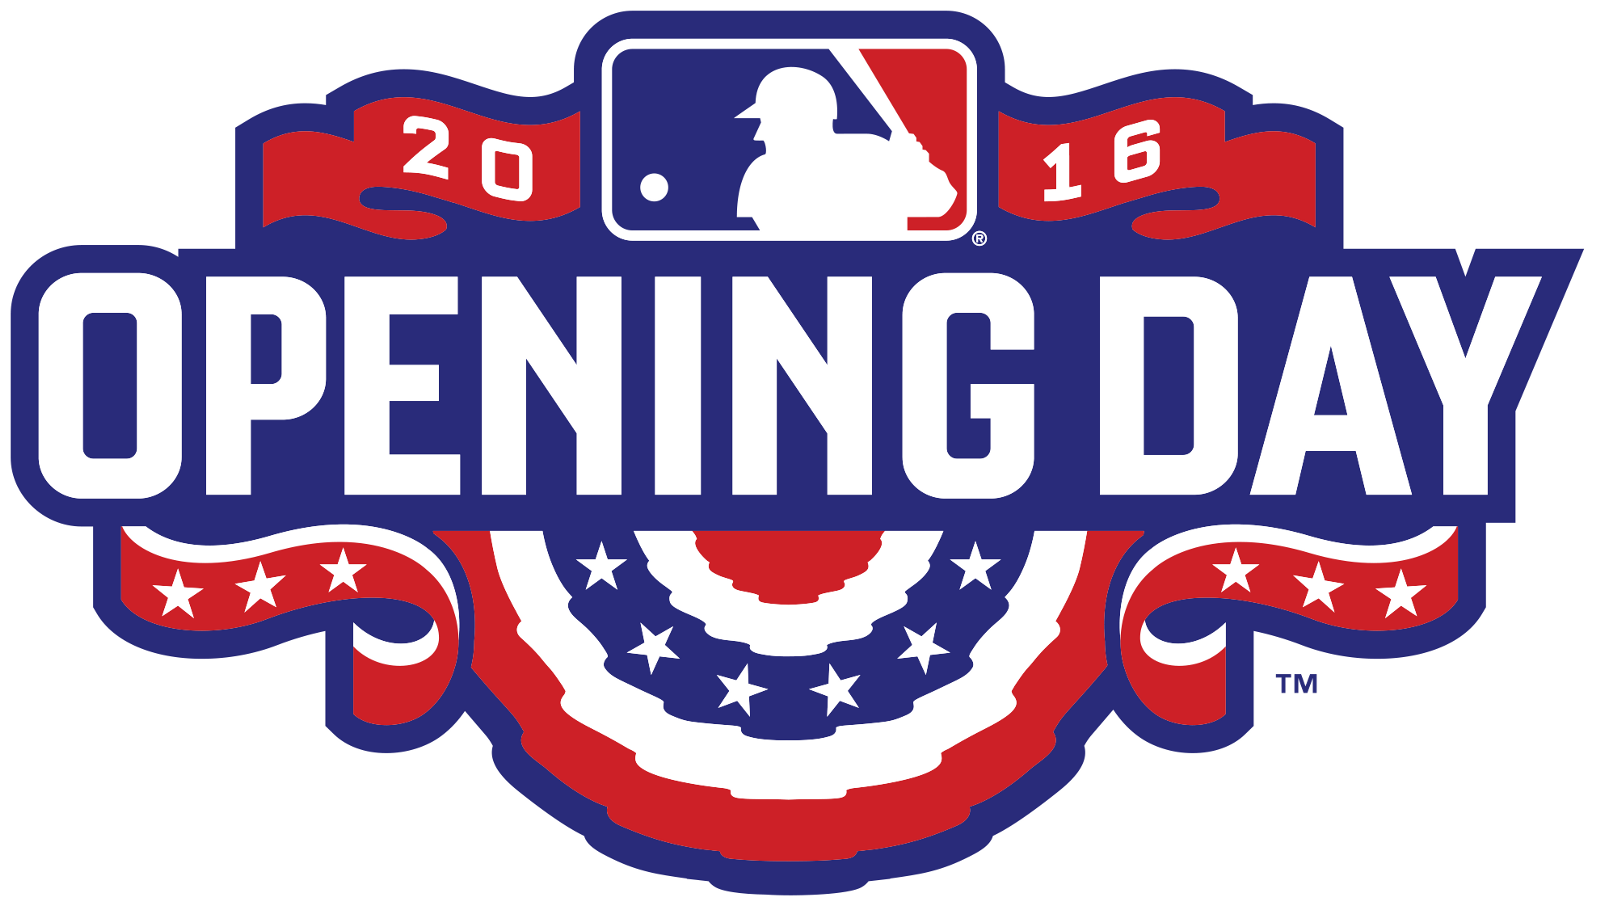 Minnesota twins baseball clipart jpg freeuse library MLB Opening Day Schedule – Hungry Fan – Medium jpg freeuse library